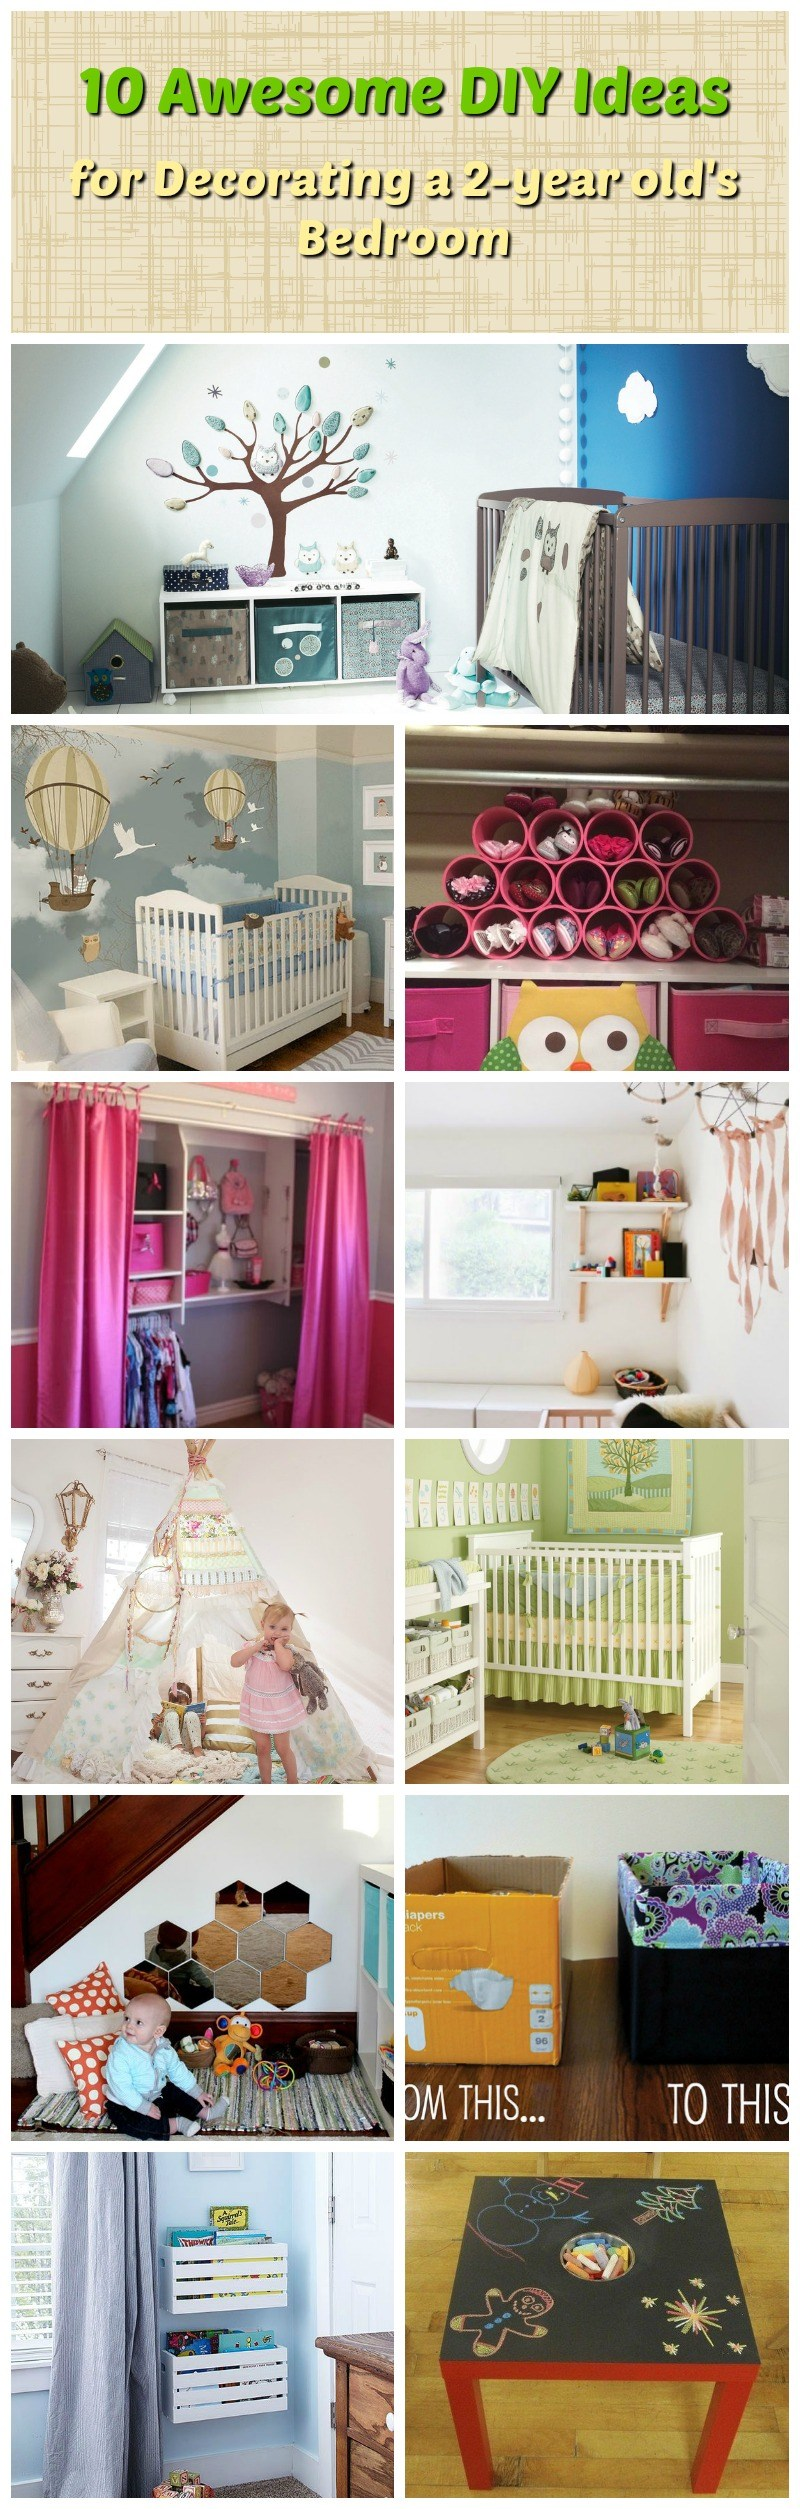 10 Awesome DIY Ideas for Decorating a 2-year old's Bedroom ...